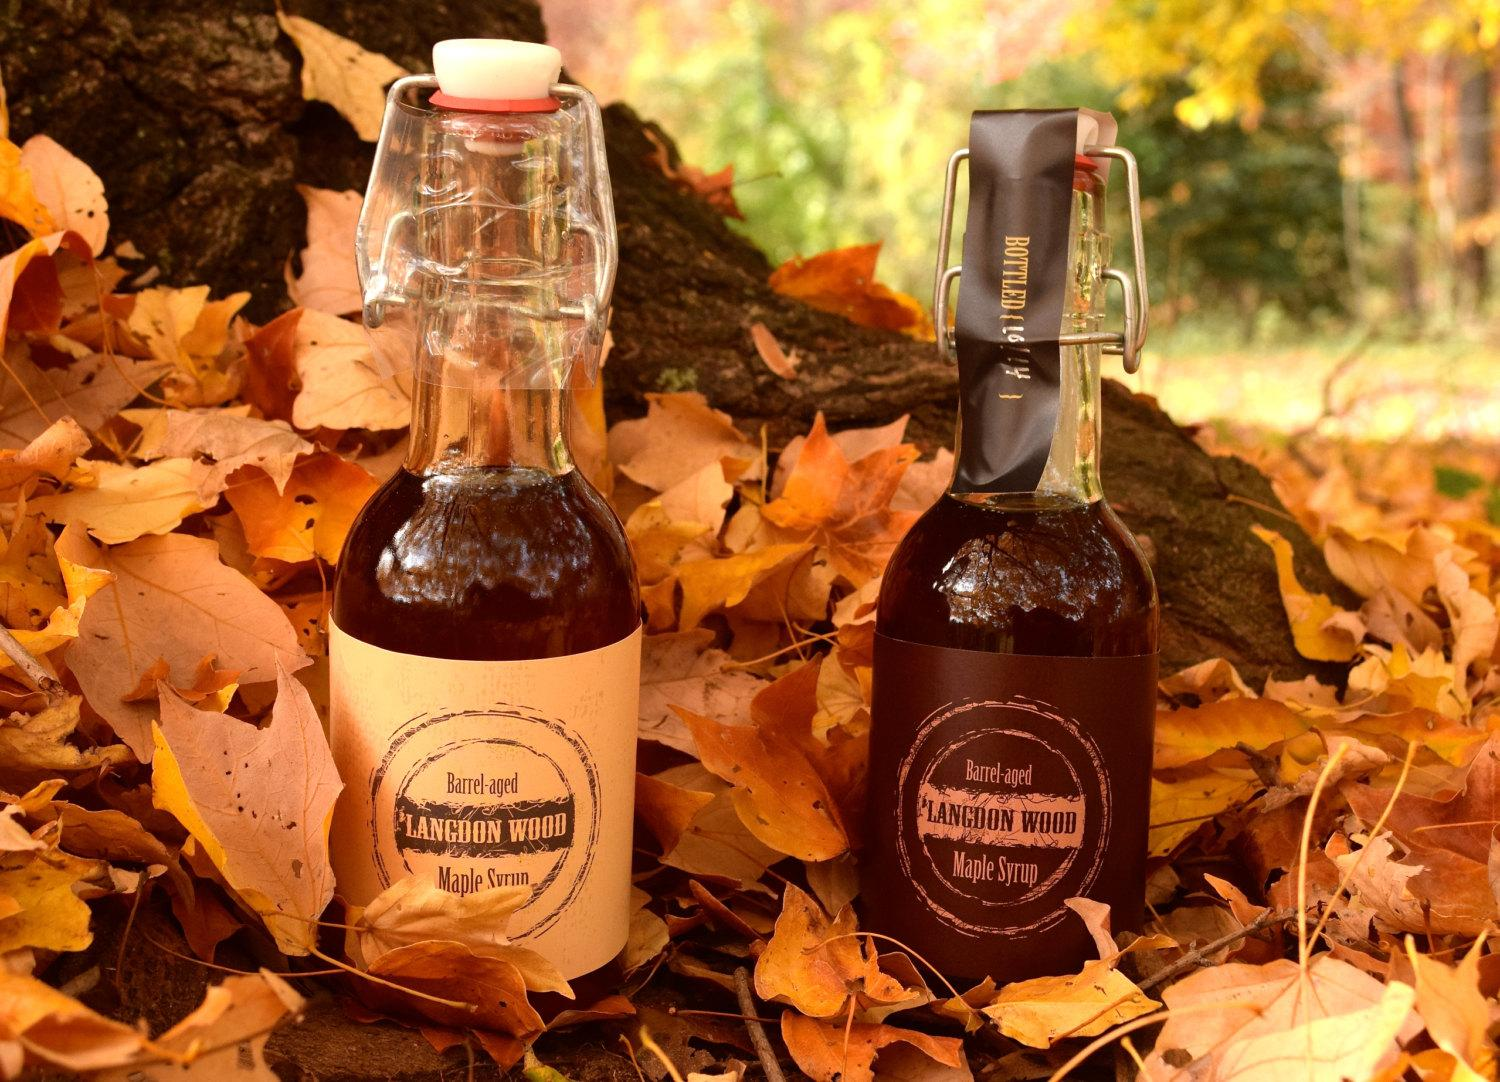 Barrel-Aged Maple Syrup from Langdon Wood // Price:{ }$15 per bottle // Buy online or at local retailers //{ }http://www.langdonwood.com // (Image: Langdon Wood)